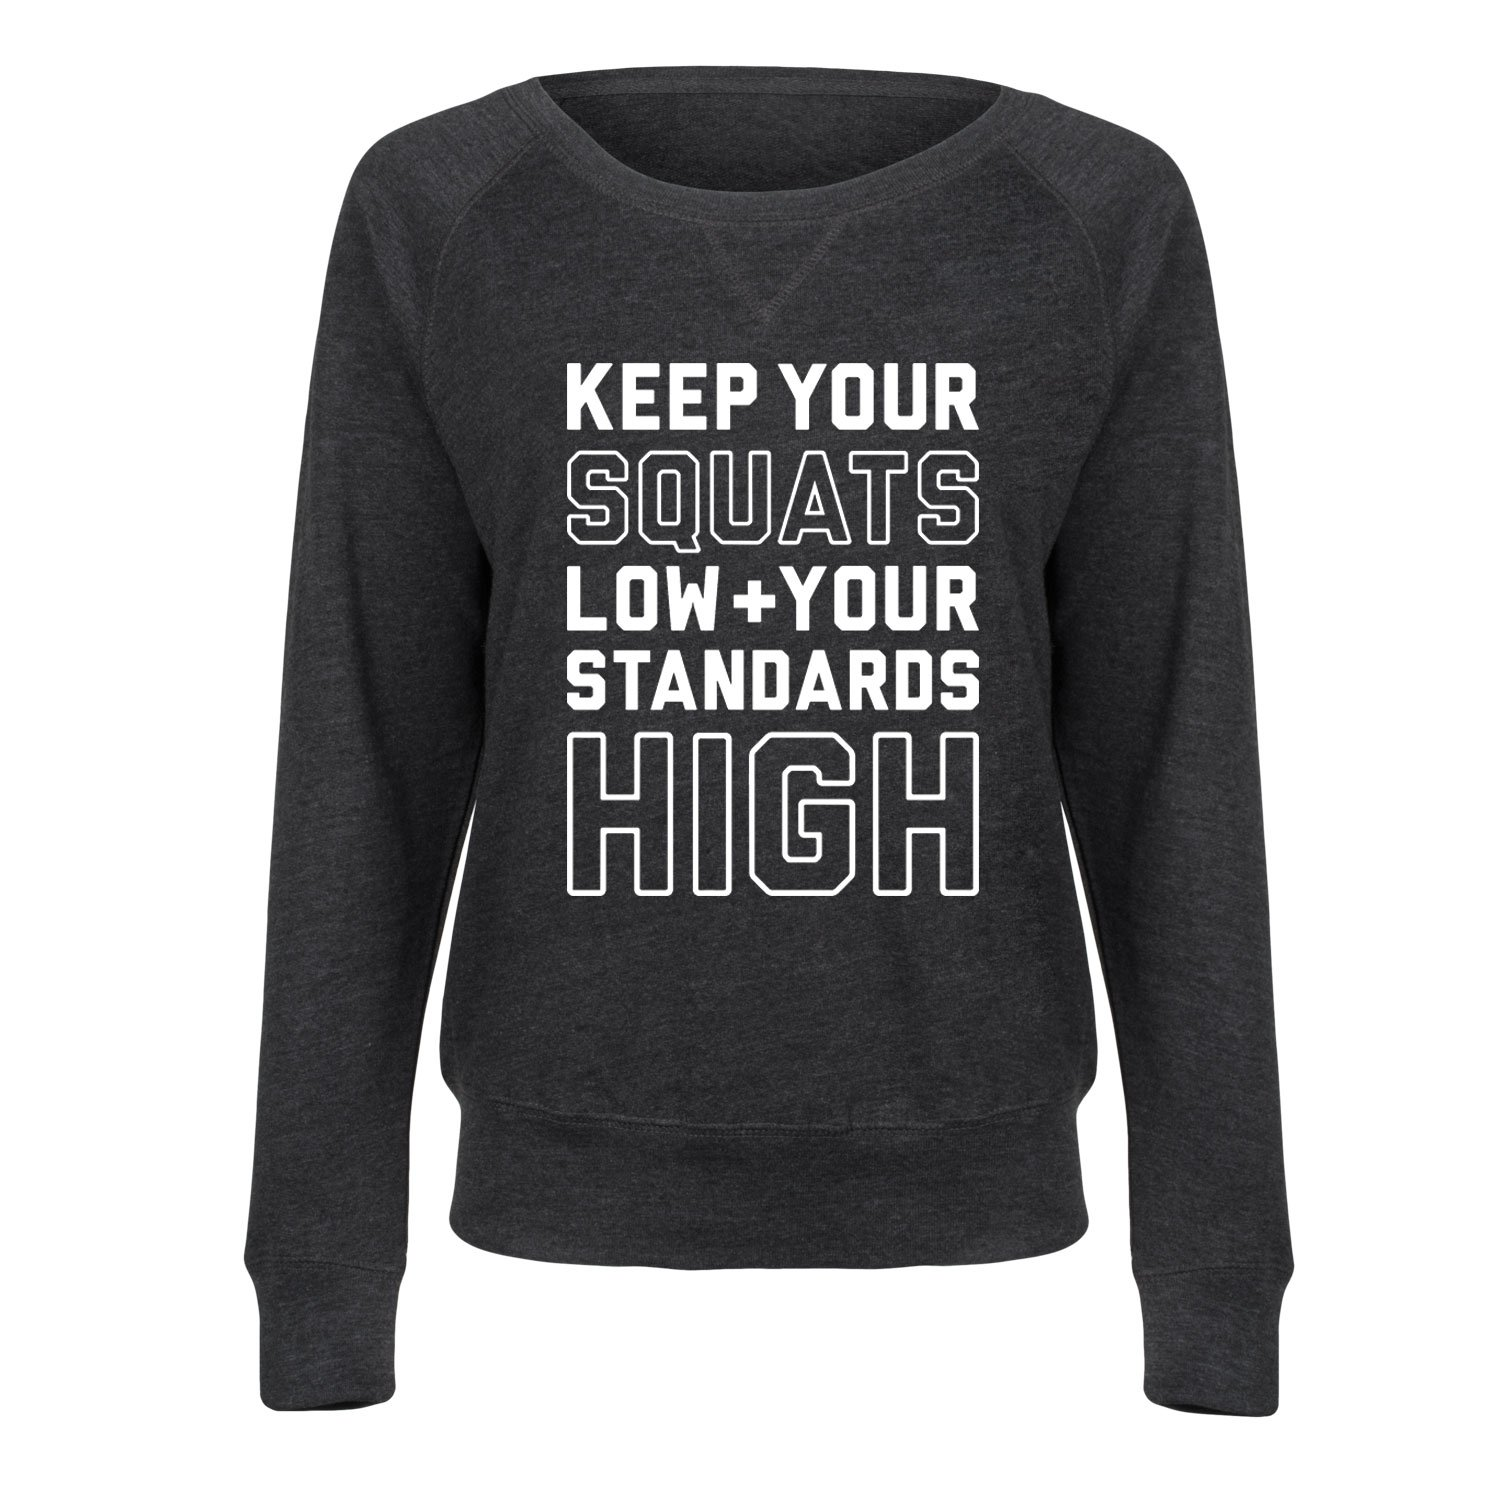 Instant Message Squats Low Standards High - Ladies French Terry Pullover Air Waves